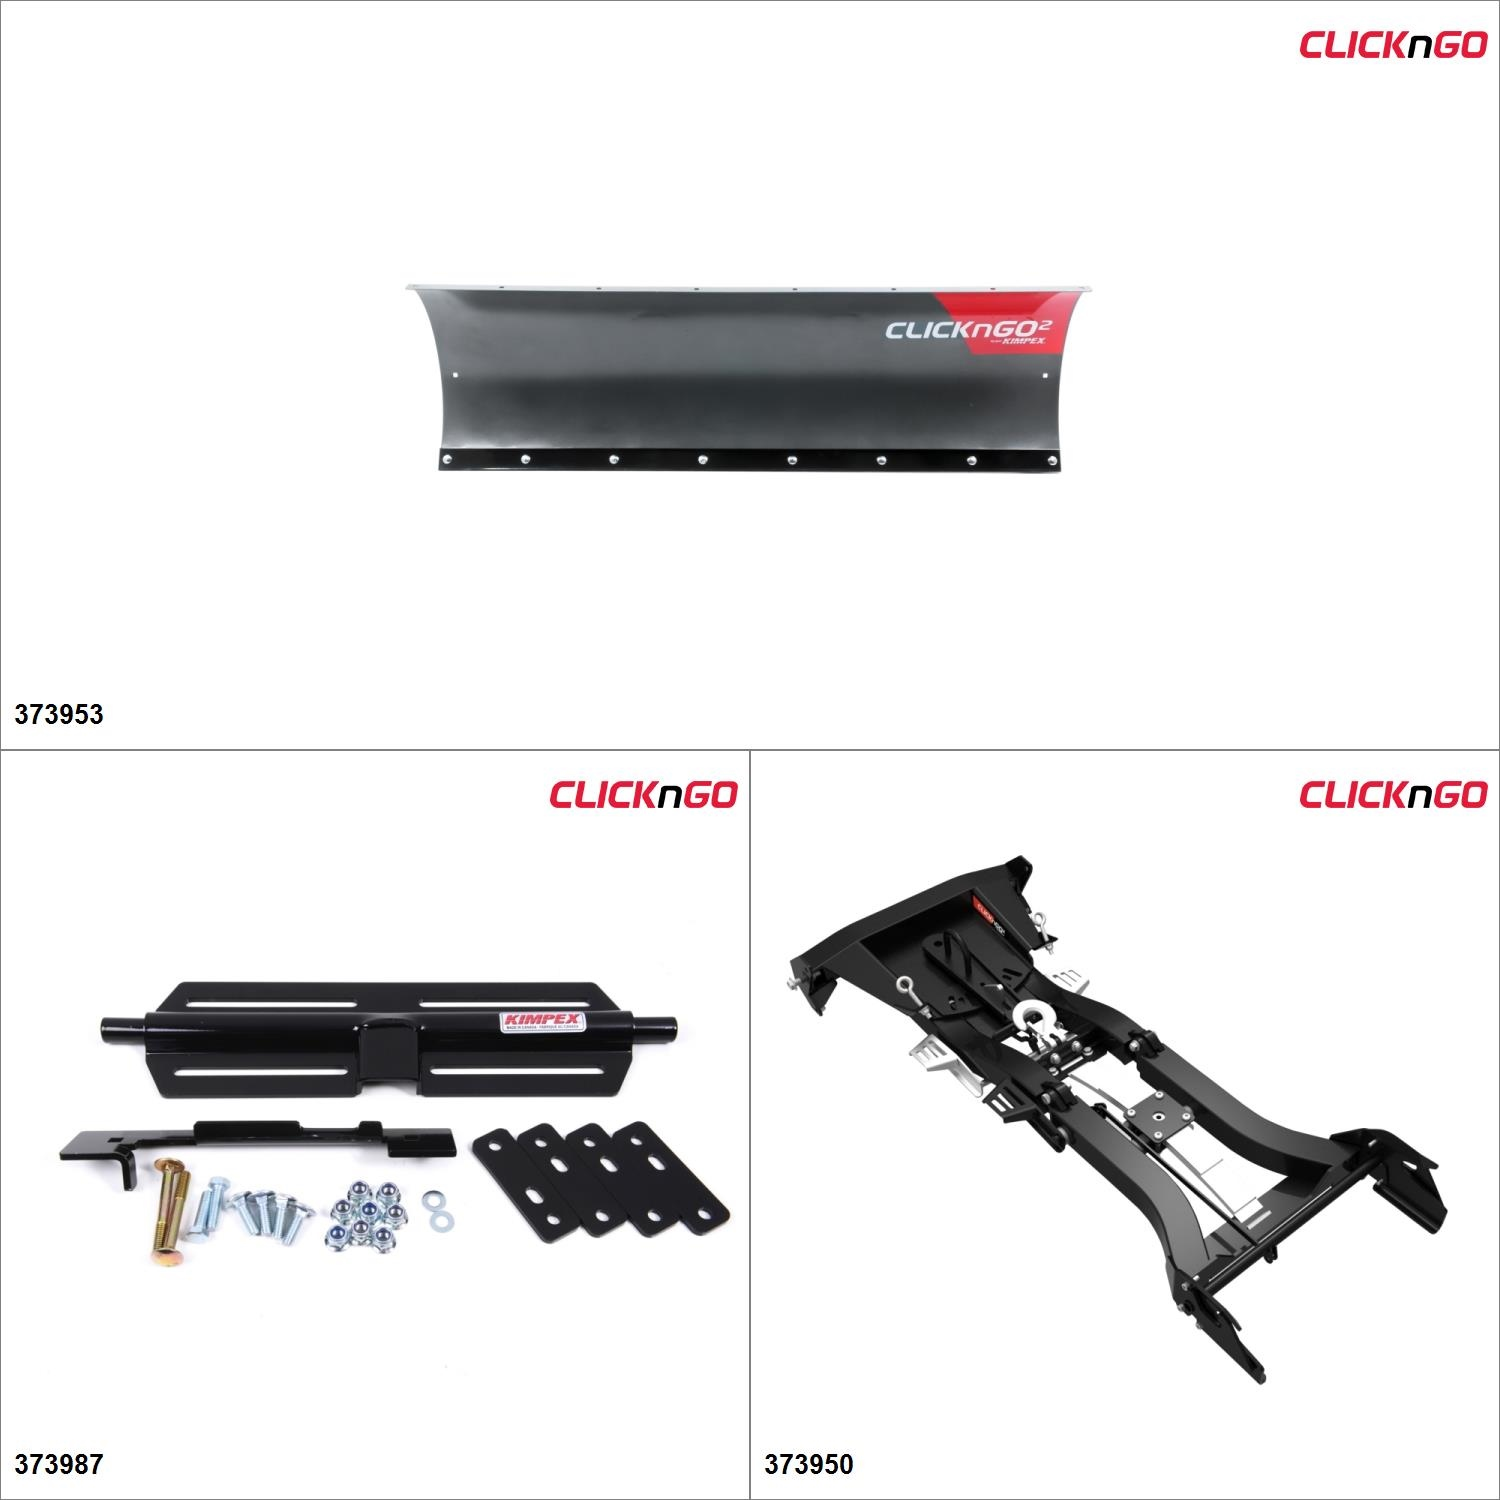 ClickNGo GEN 2 ATV Plow kit 60'', Polaris Sportsman 500 1996-05, 07-13 Black   Titanium... by ATV Snowplows